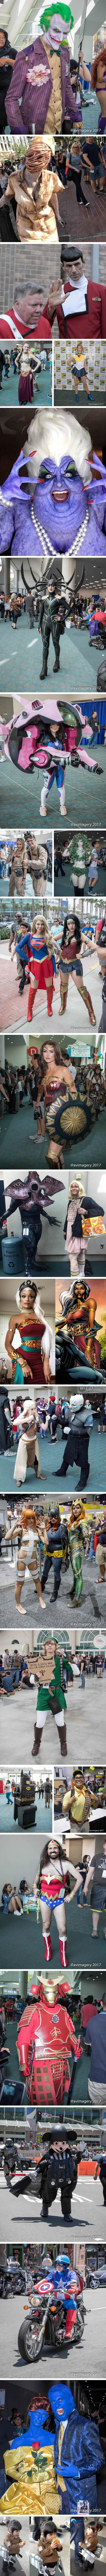 Coolest Cosplay of San Diego Comic Con 2017